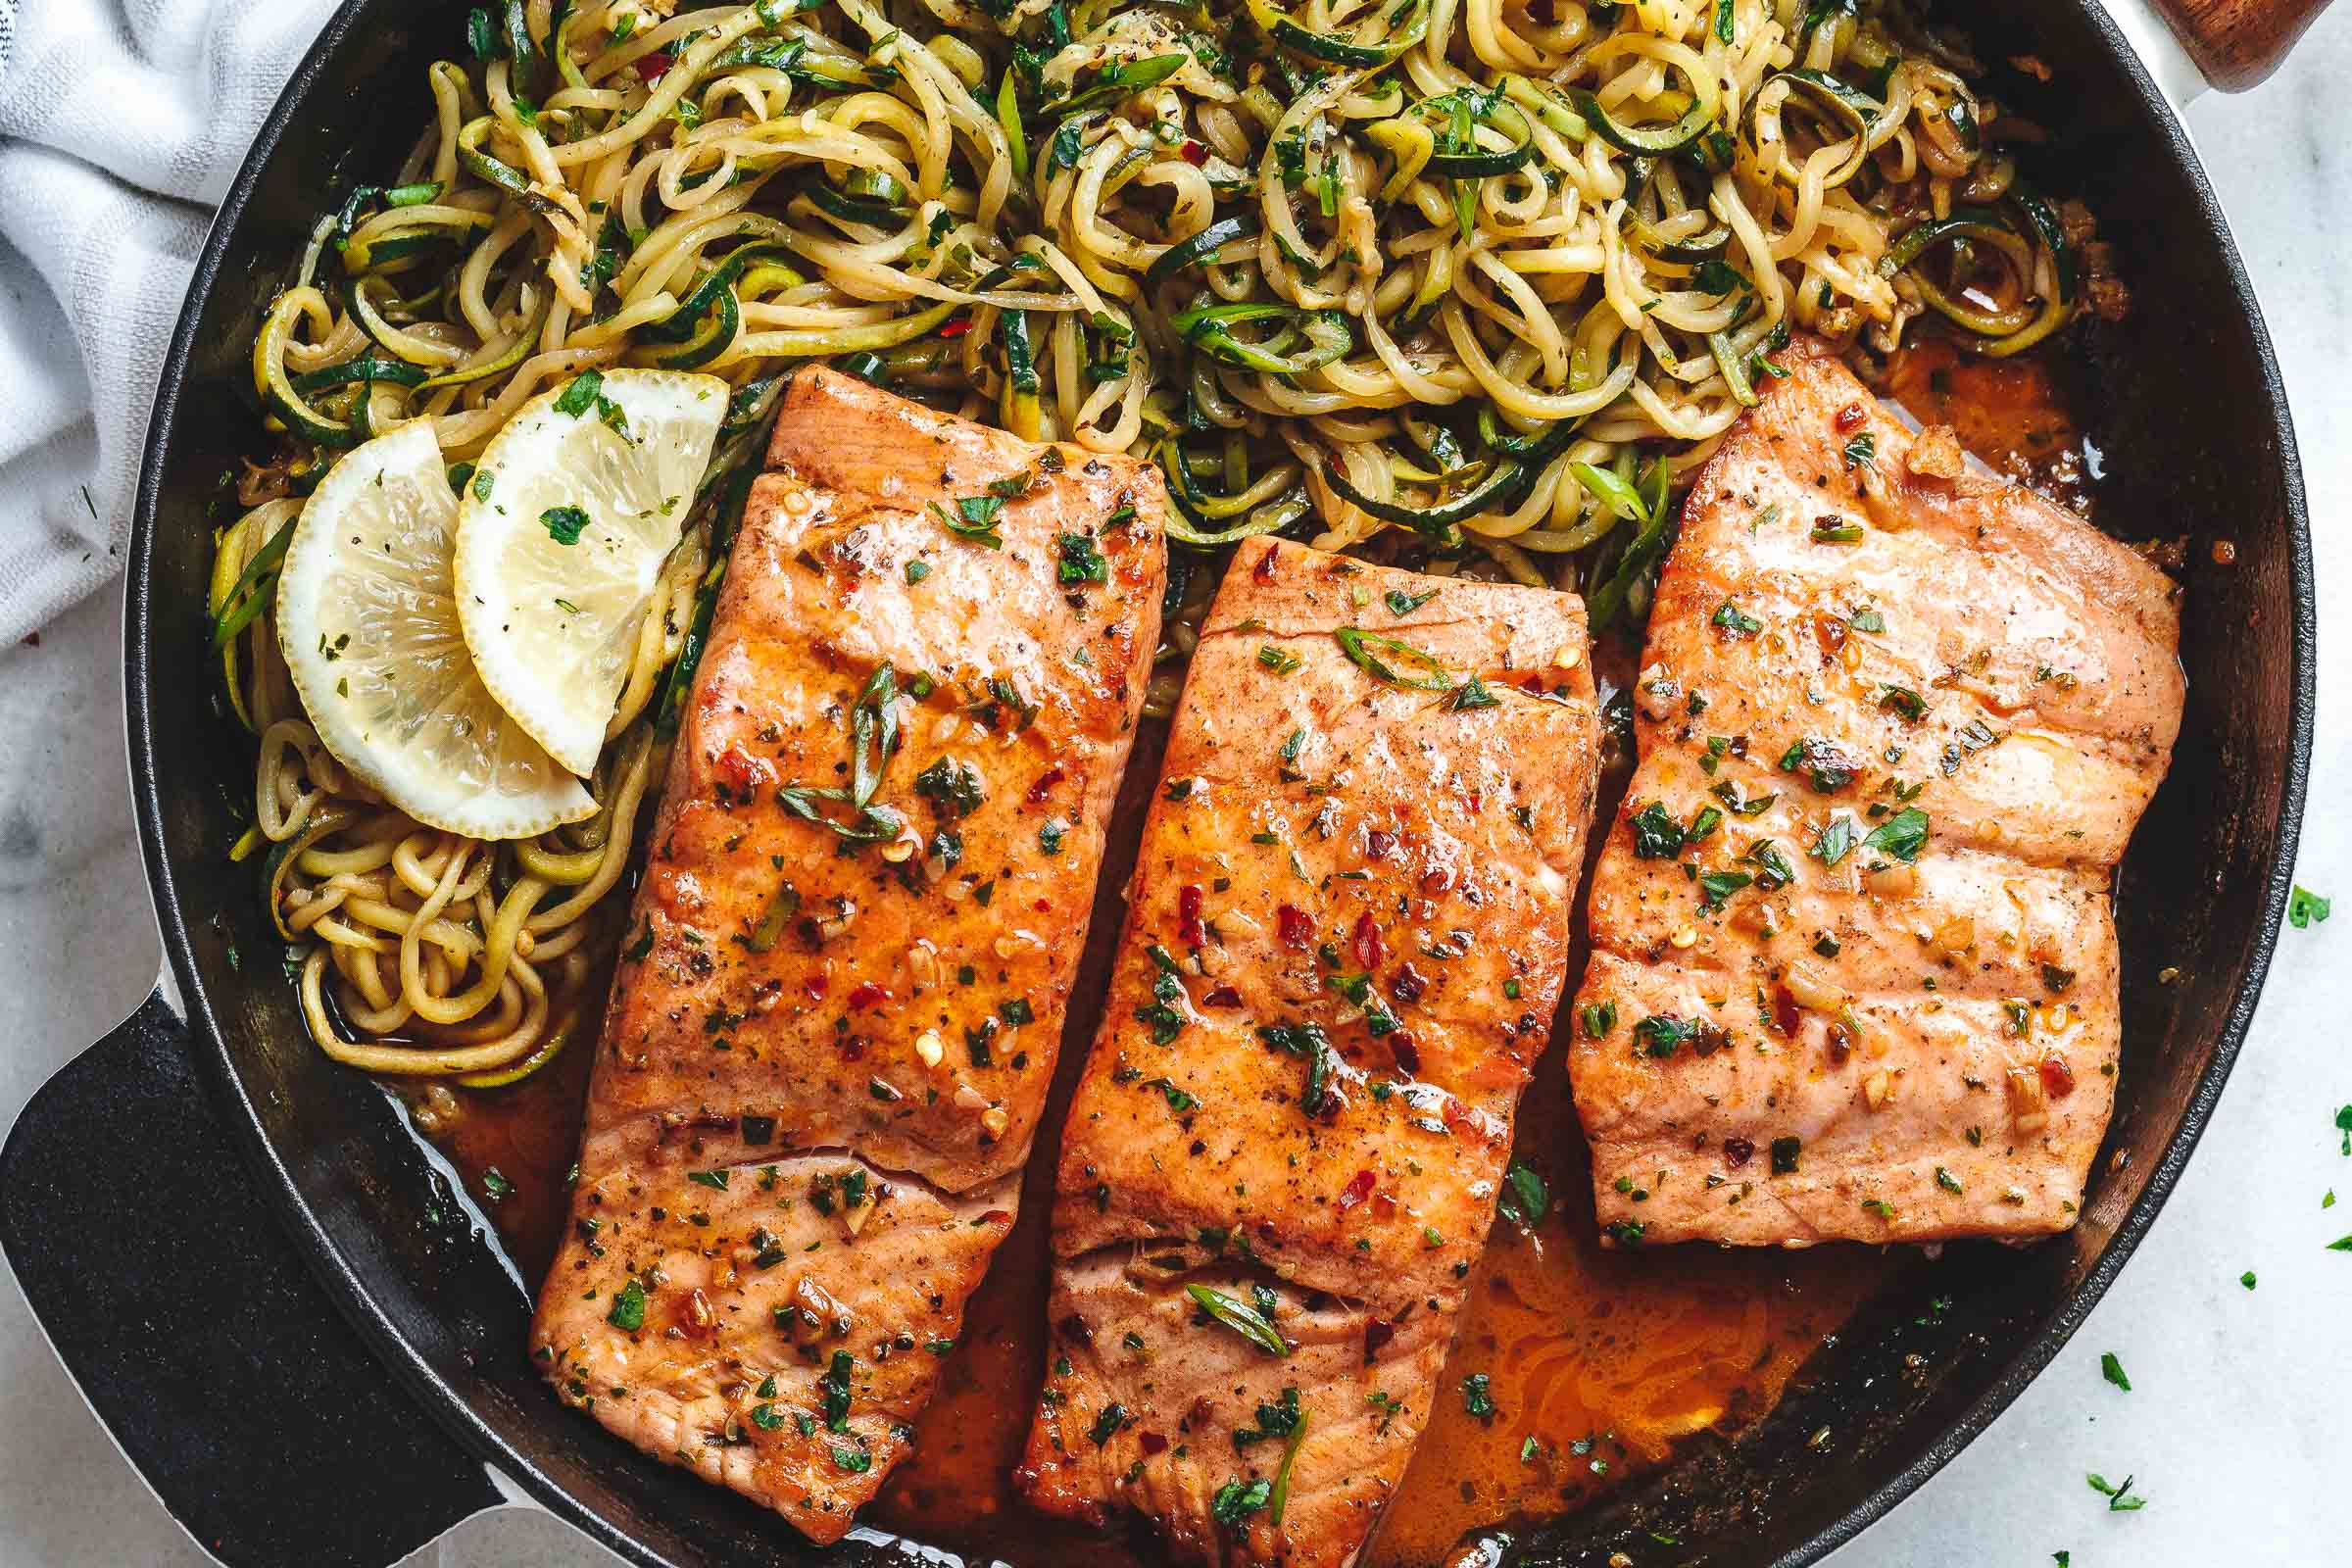 Lemon-Garlic-Butter-Salmon-with-Zucchini-Noodles-recipes.jpg